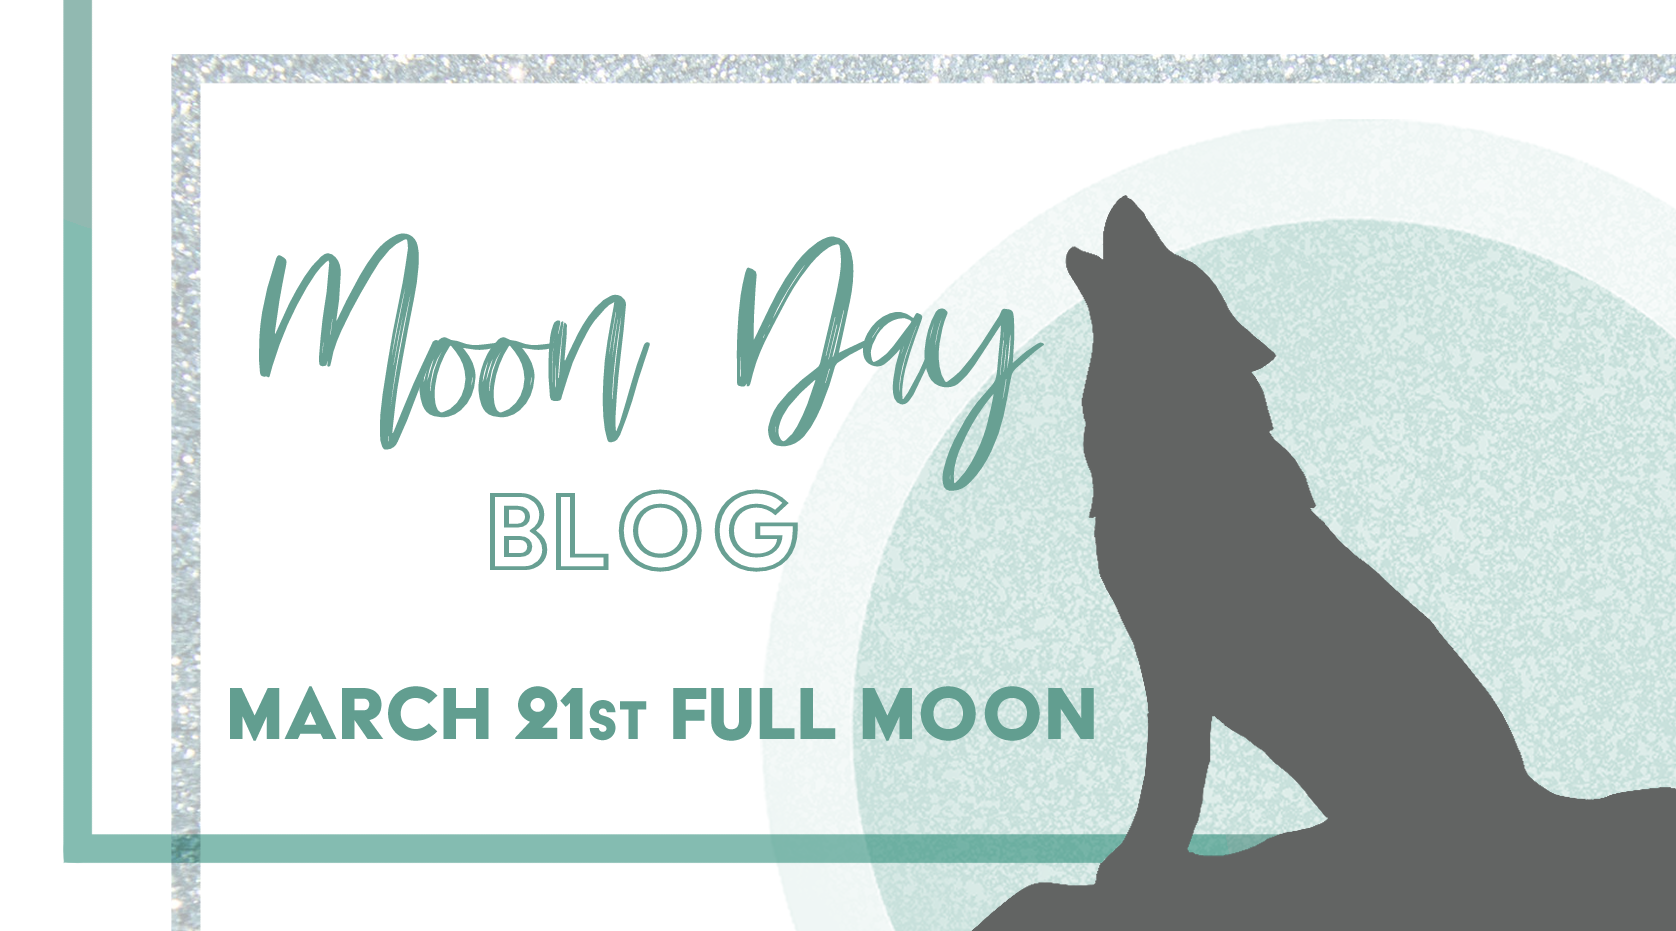 Moon Day – March 21st Full Moon